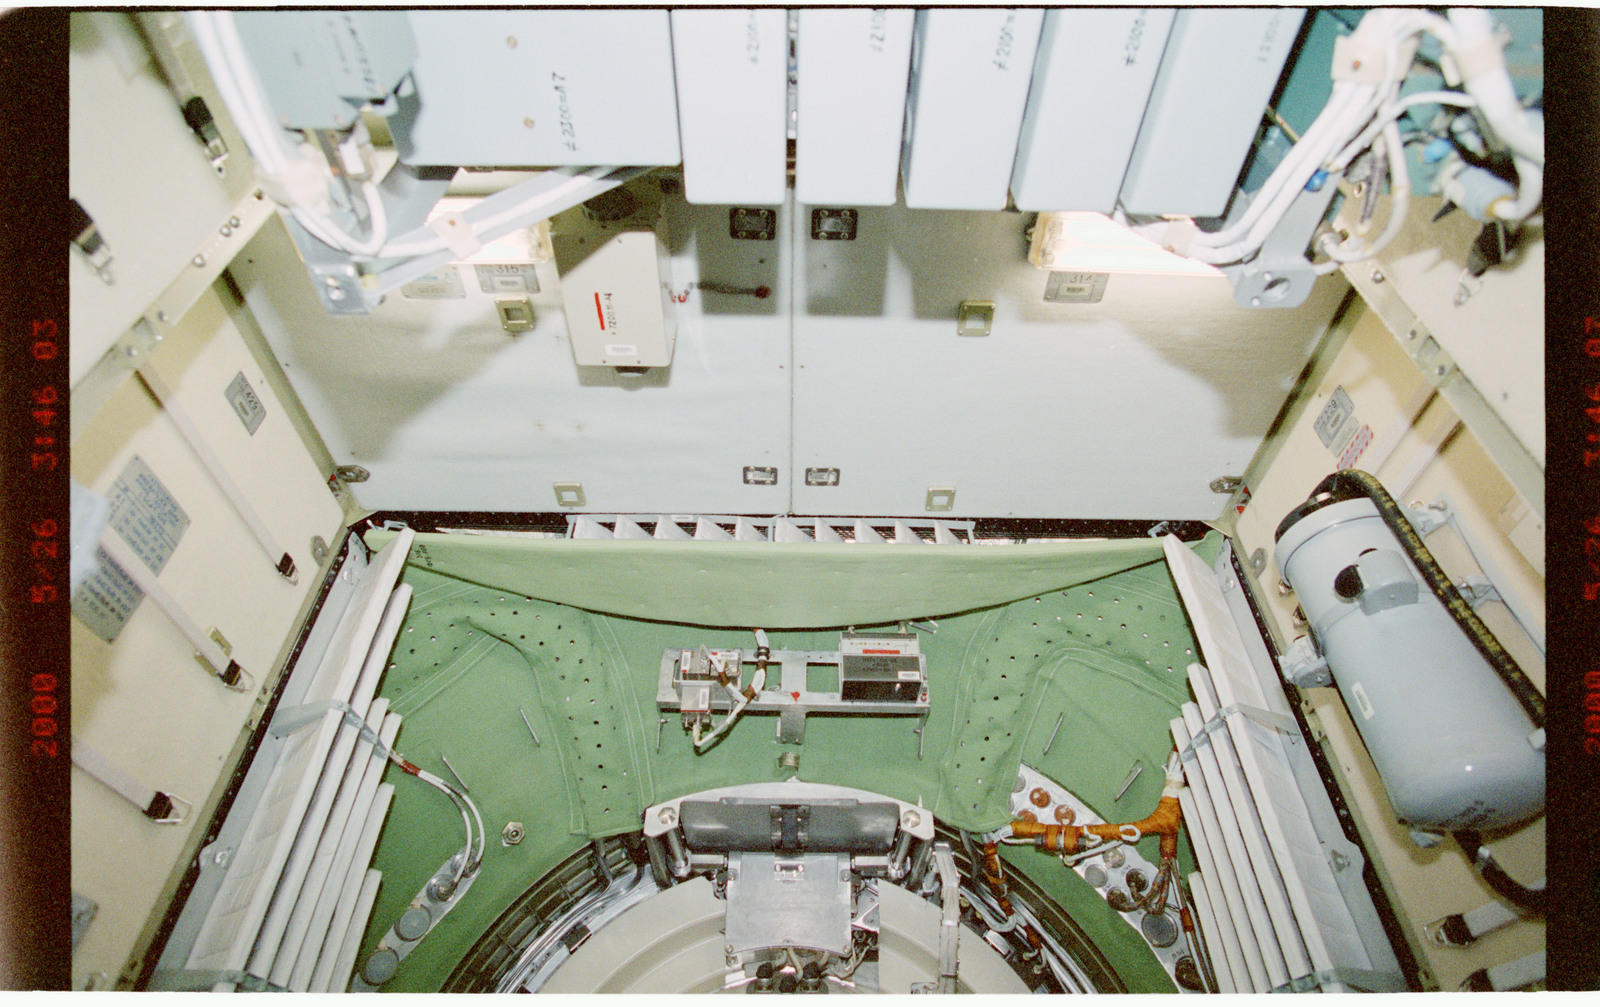 STS101-394-025 - STS-101 - Interior view of the FGB/Zarya module